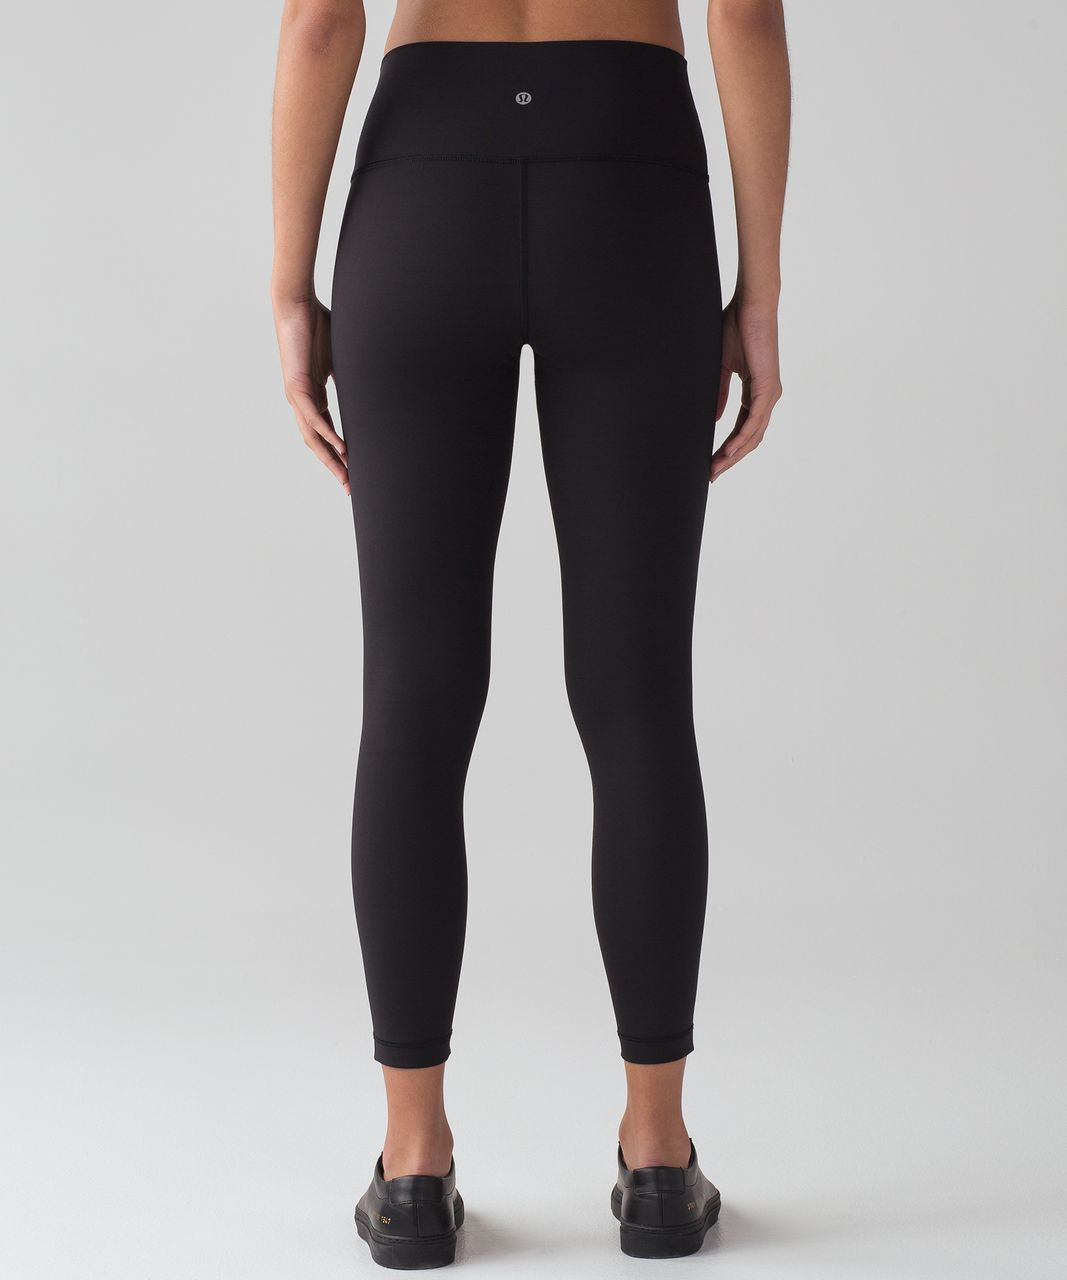 8b21d707e3 Lululemon Wunder Under Hi-Rise 7/8 Tight (Full-On Luxtreme 25 ...